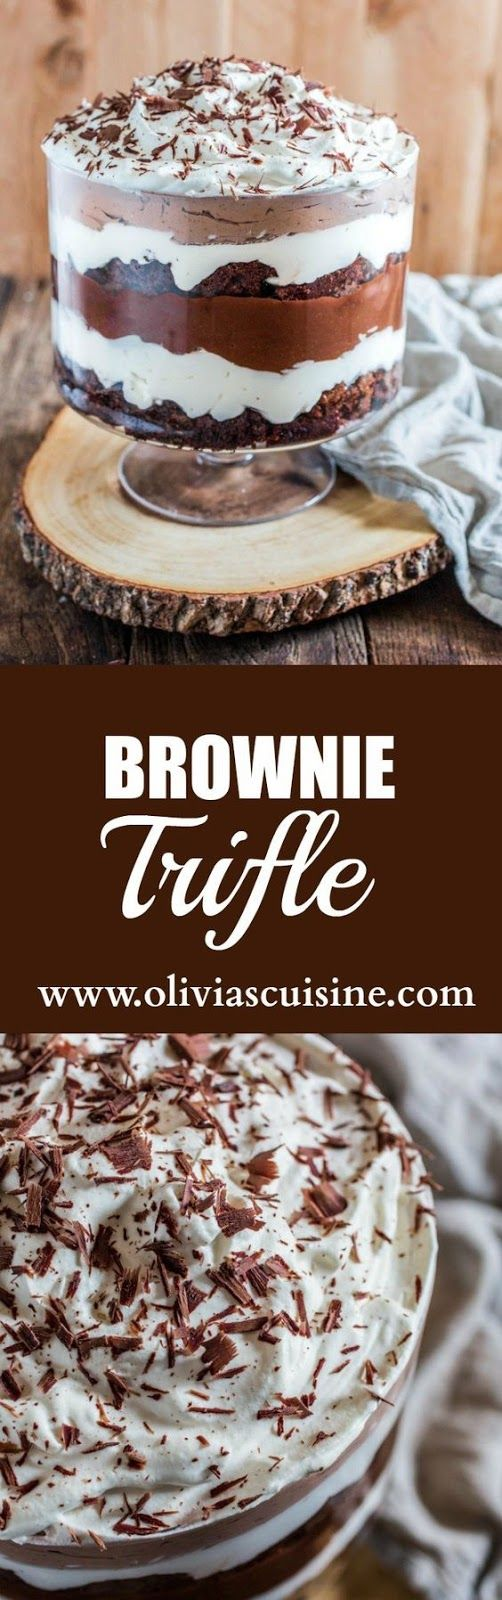 INGREDIENTS     Brownies:   2 packages NESTLÉ® TOLL HOUSE® Brownies & More Chocolate Baking Mix with Semi-Sweet Chocolate Morsels   2 l...